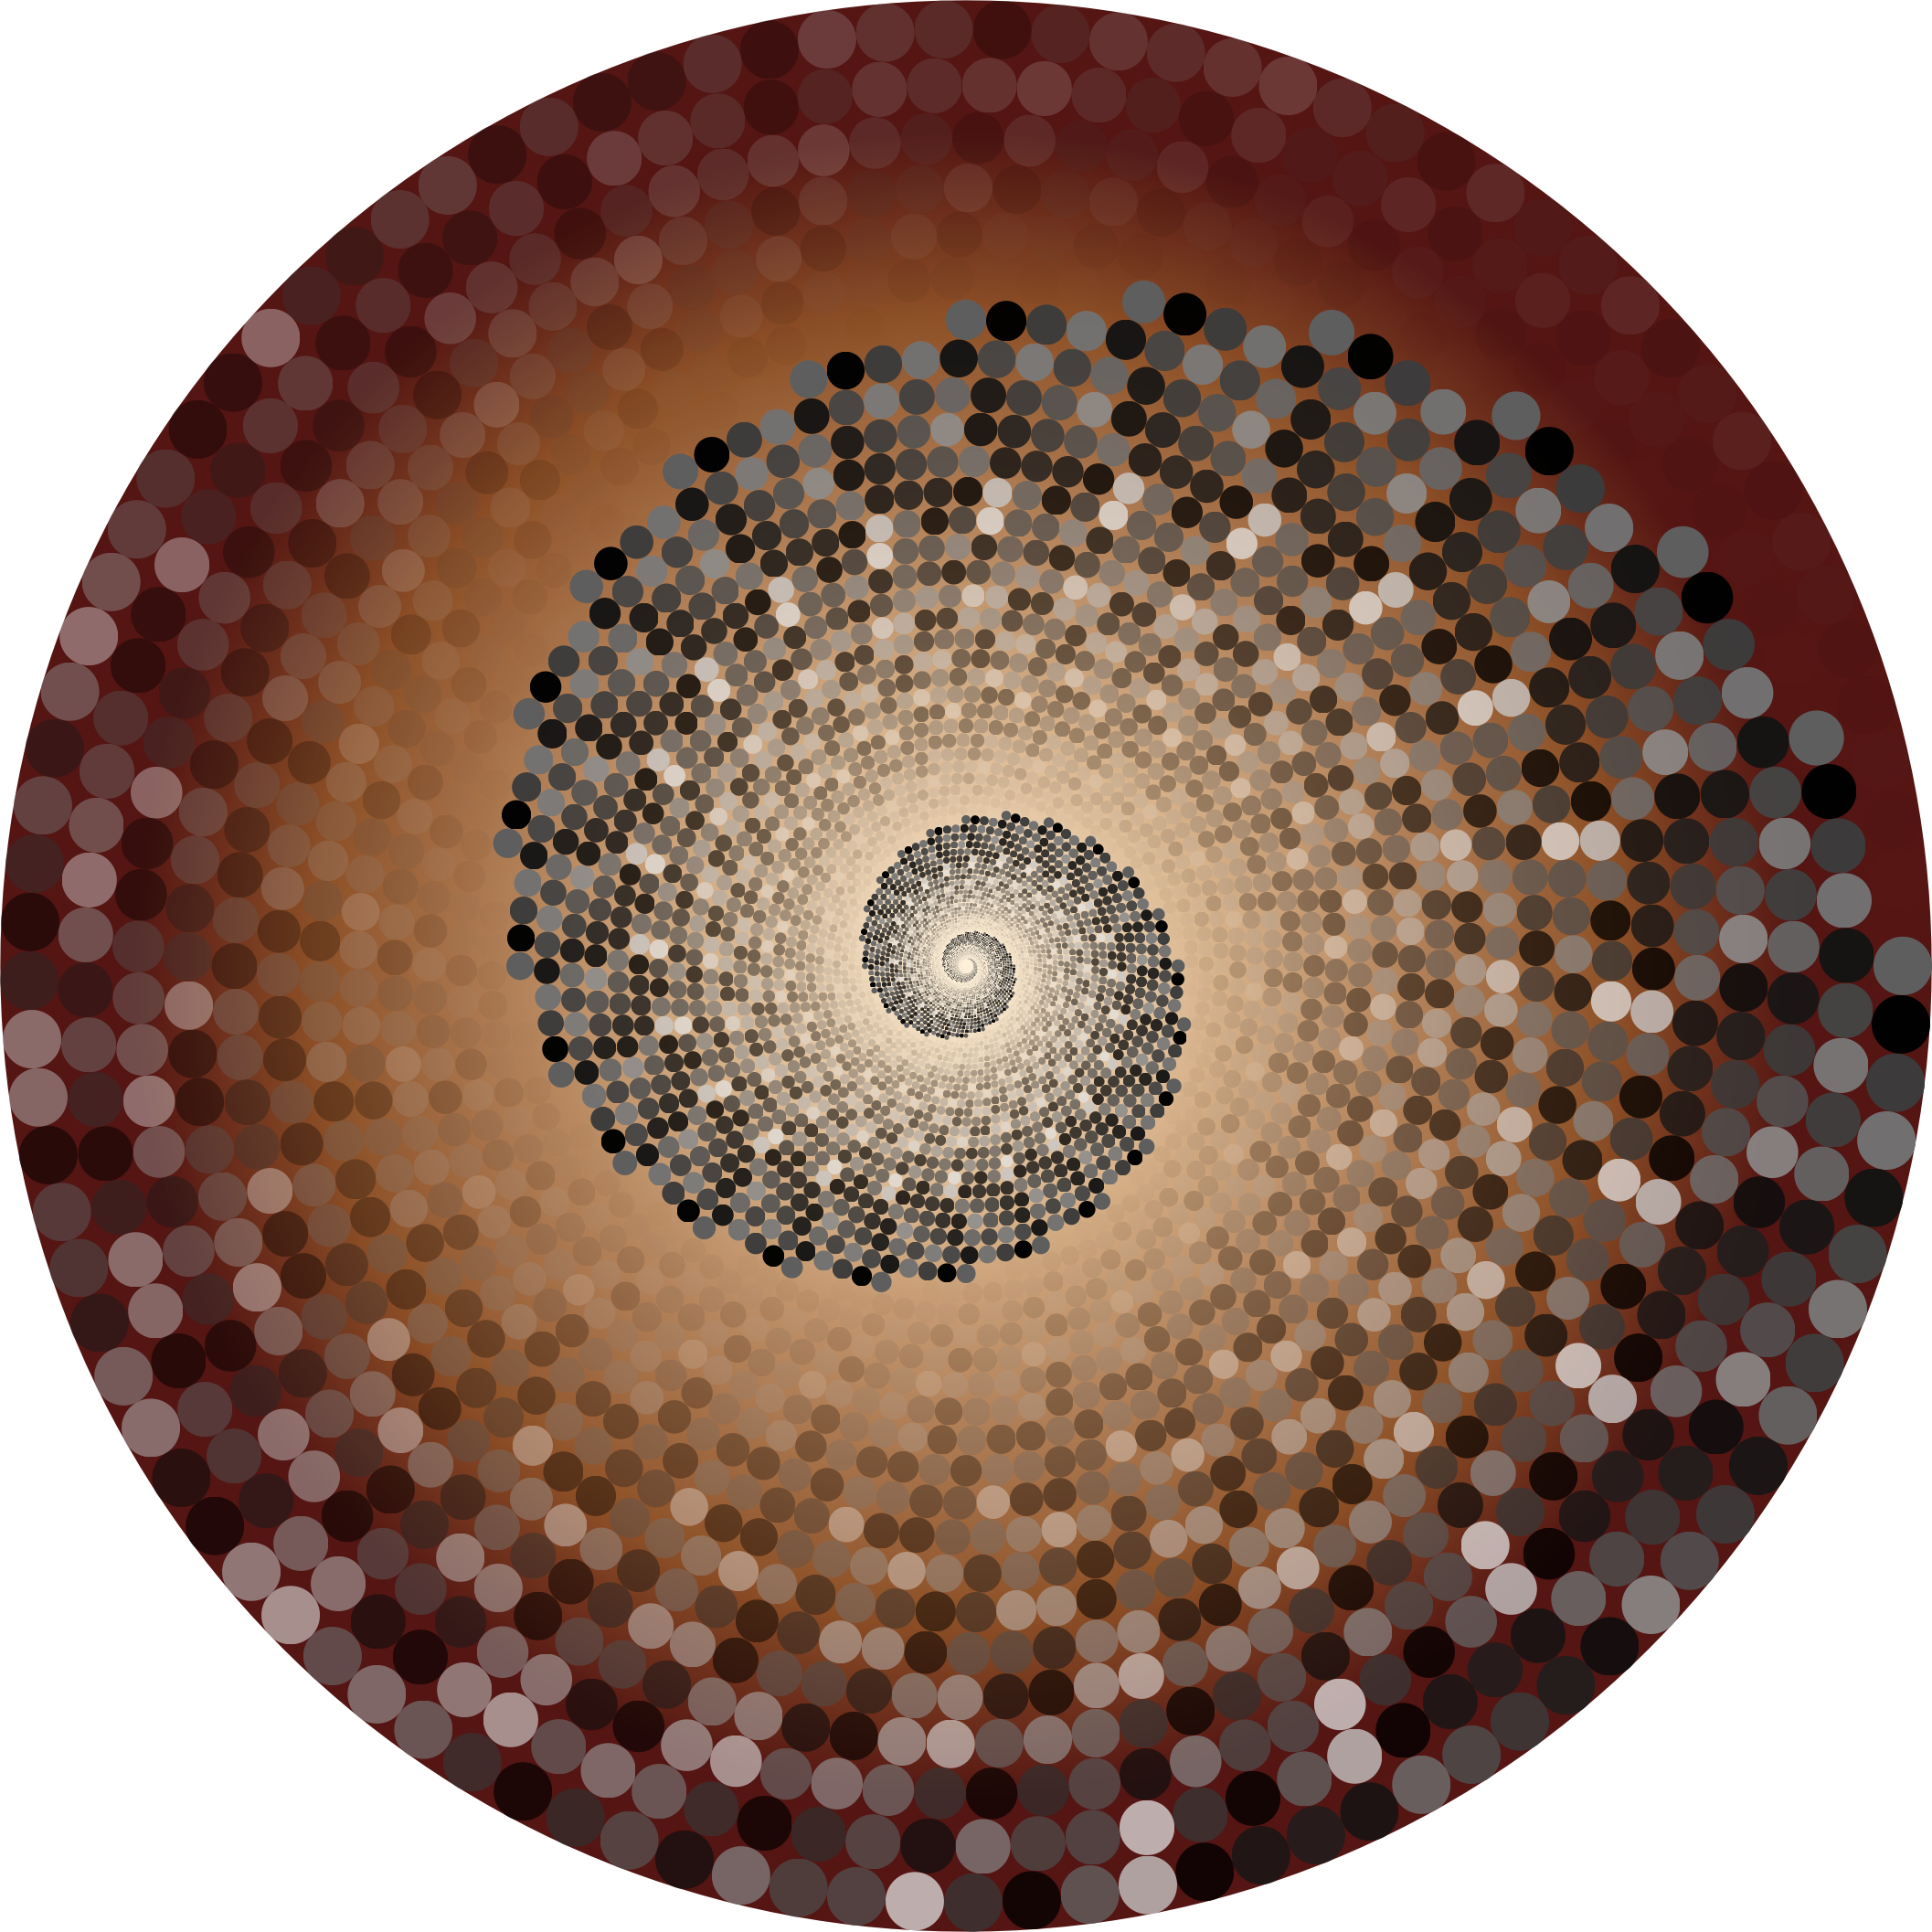 Grayscale Swirling Circles Vortex Variation 5 by GDJ